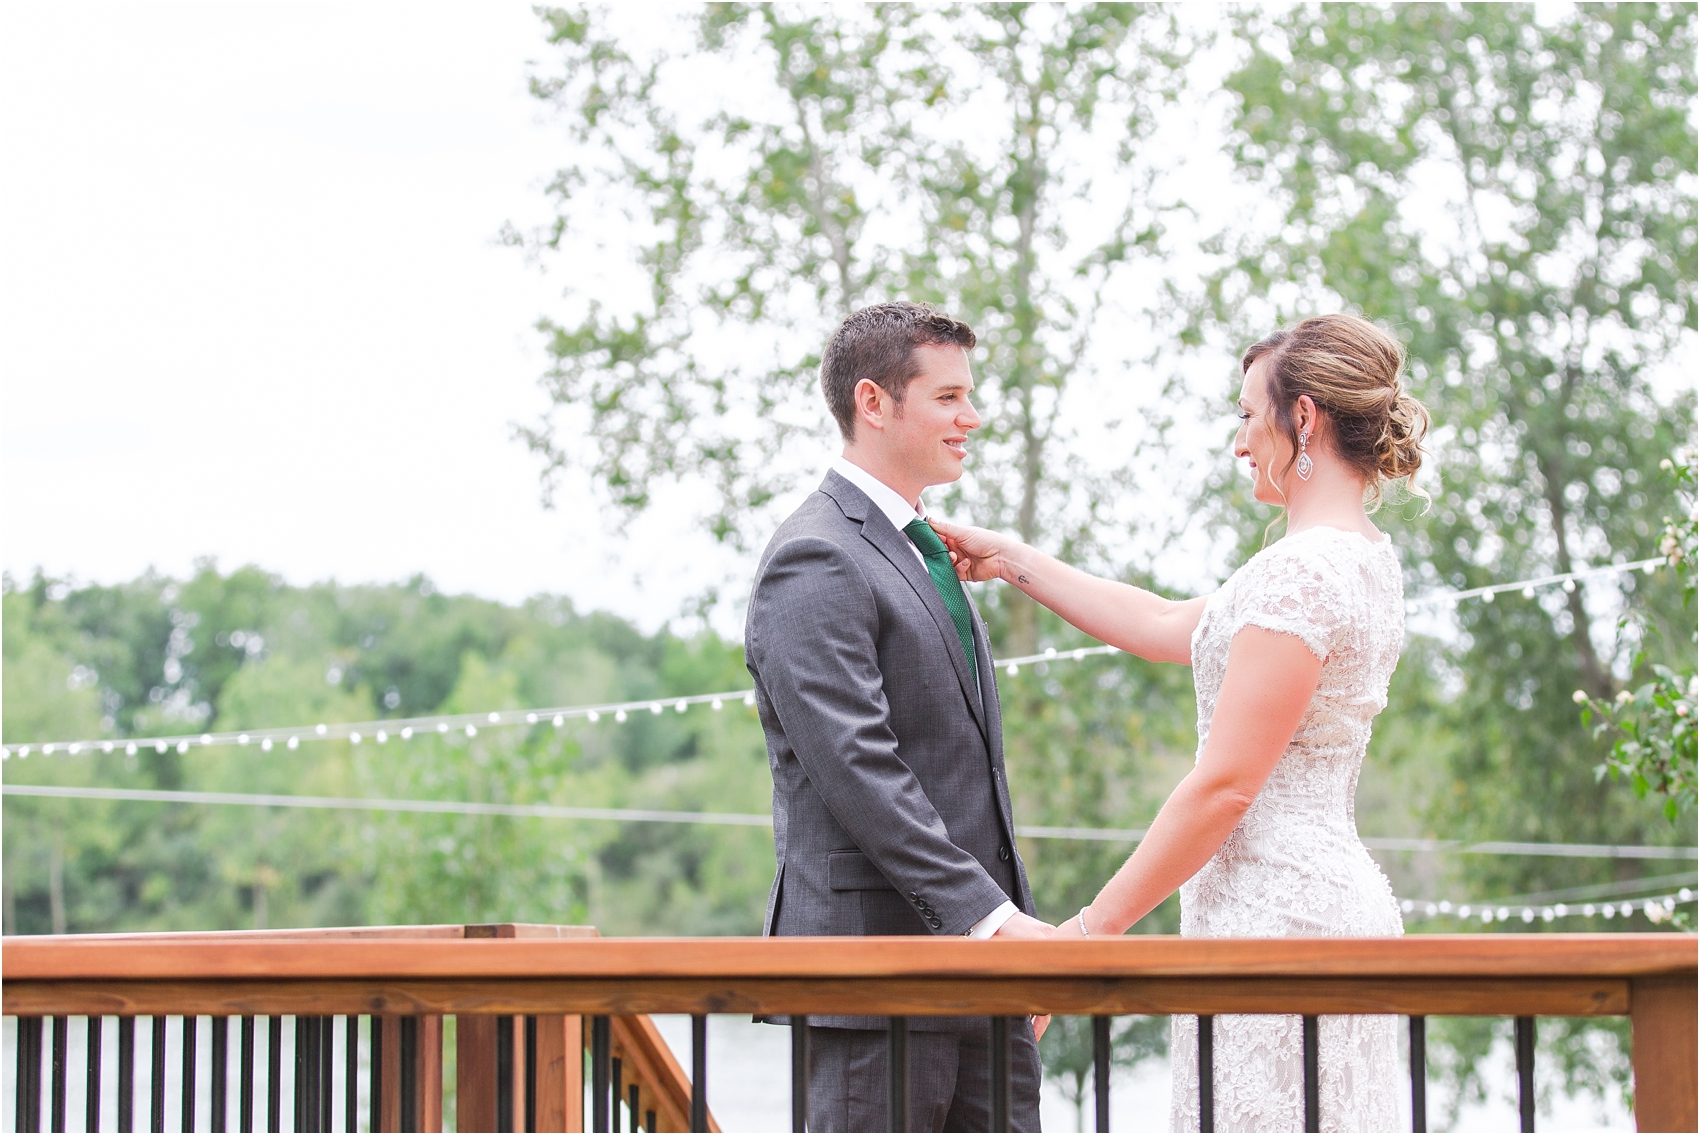 romantic-intimate-backyard-wedding-photos-at-private-estate-in-ann-arbor-mi-by-courtney-carolyn-photography_0026.jpg